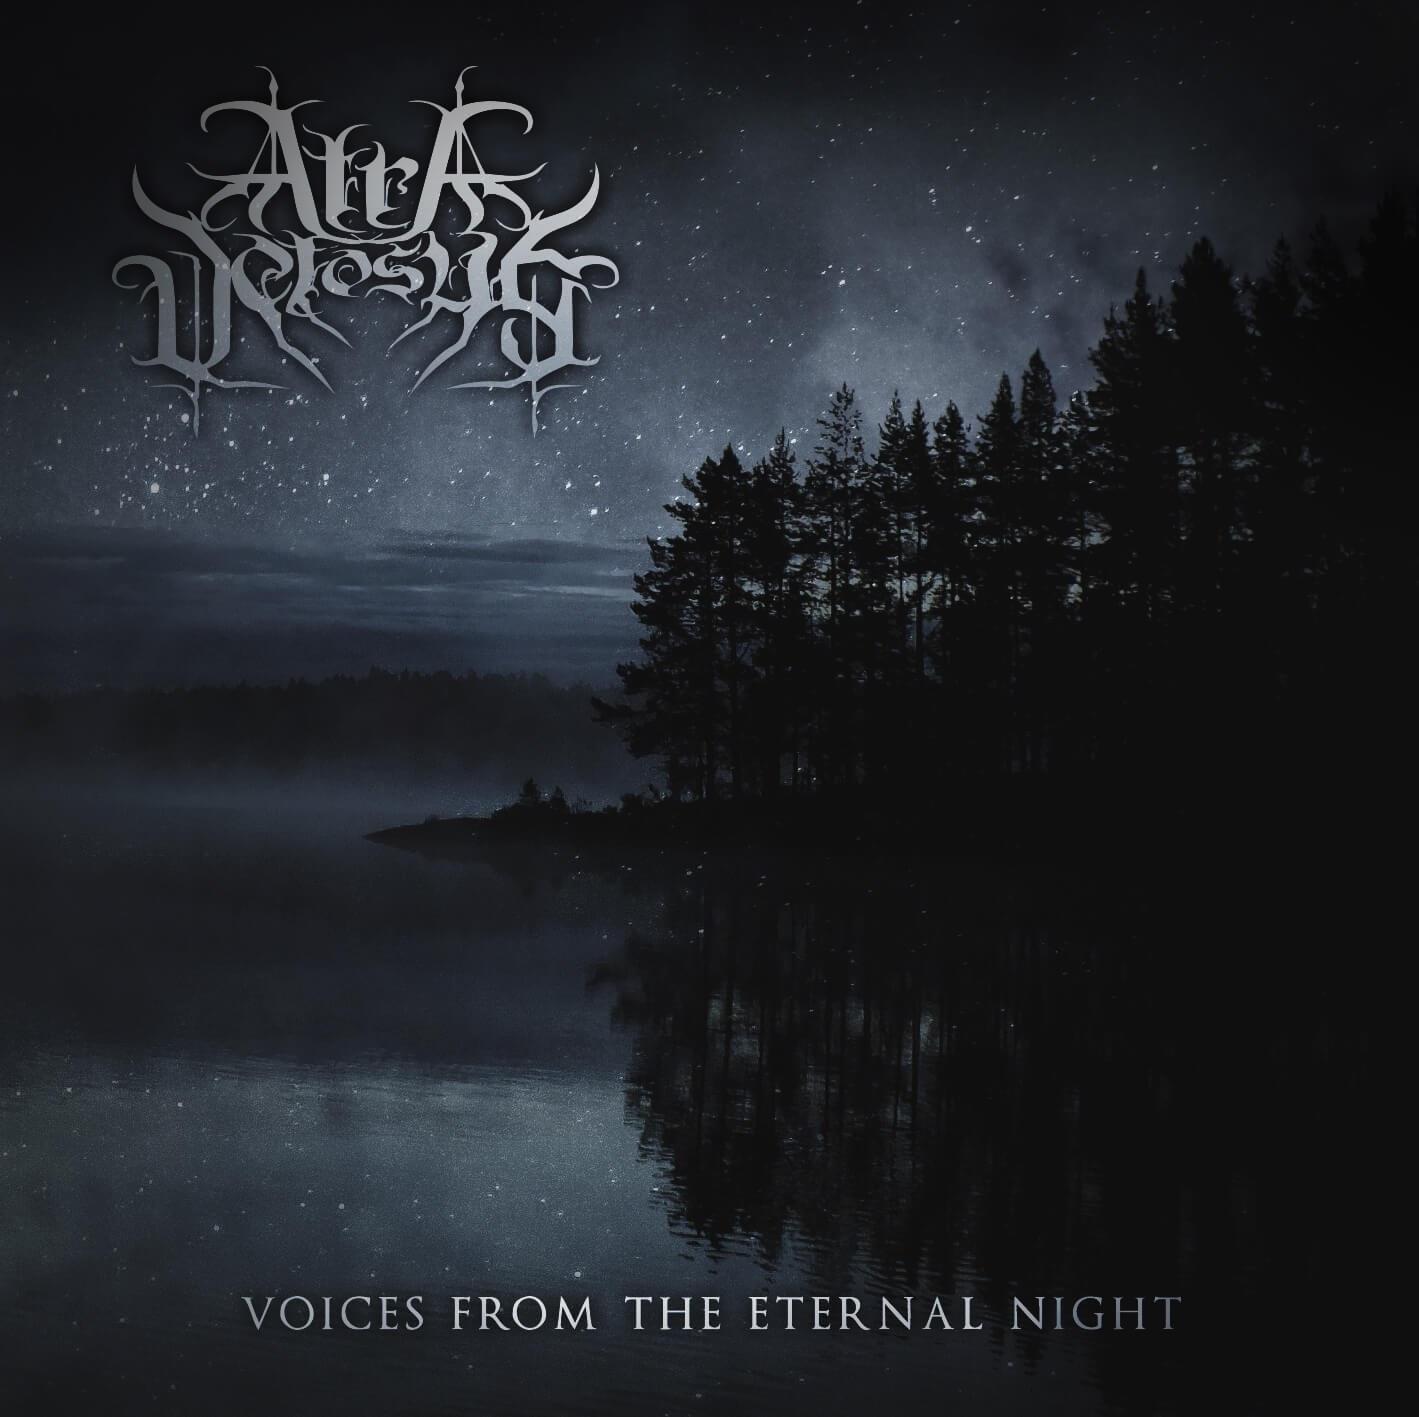 Atra-Vetosus-Voices-From-The-Eternal-Night